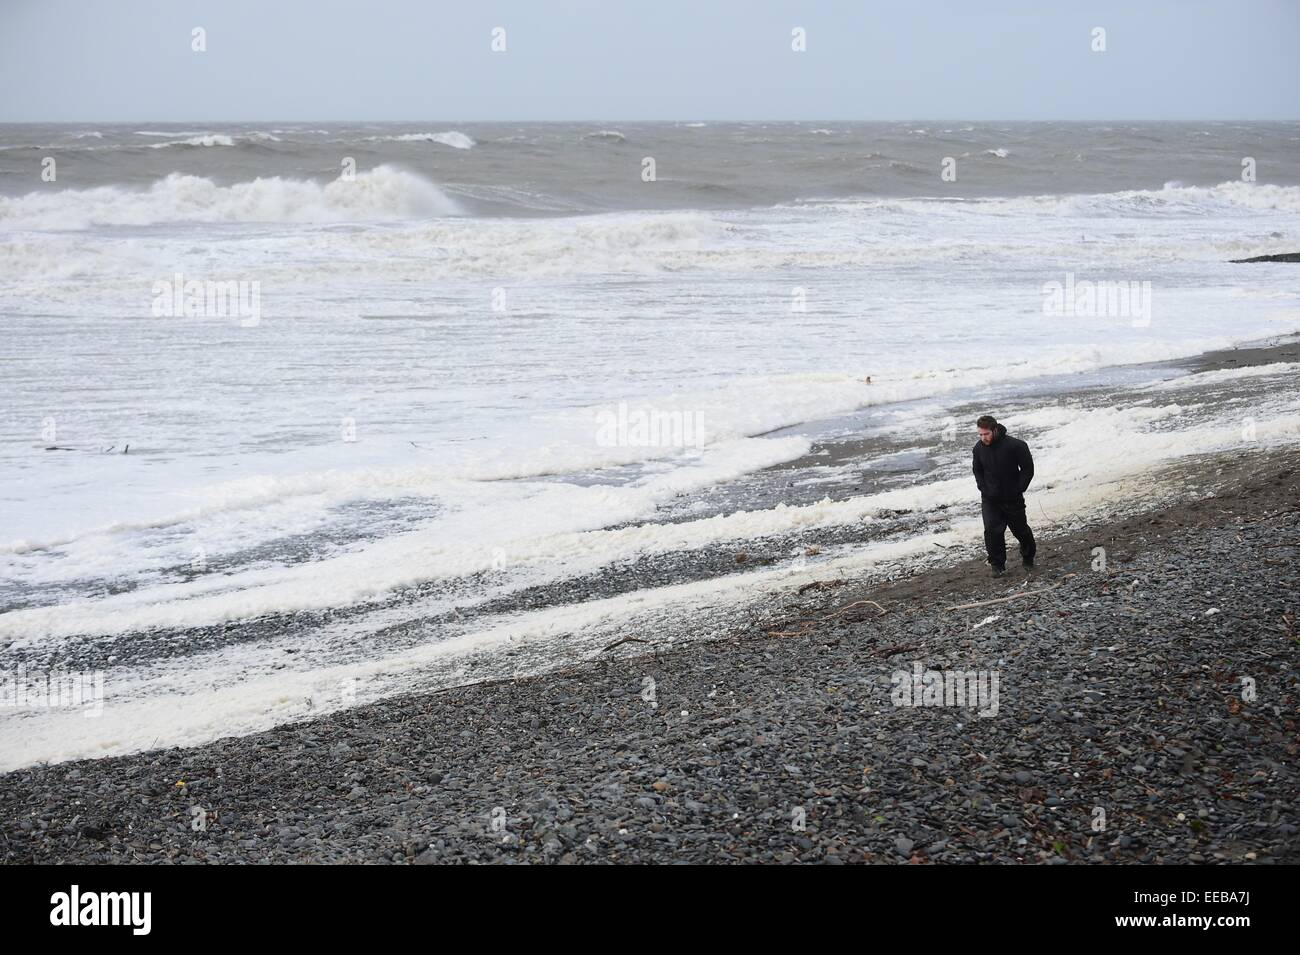 Aberystwyth, Wales, UK. 15th January, 2015. UK Weather: A solitary man walks along the beach as gale force winds - Stock Image